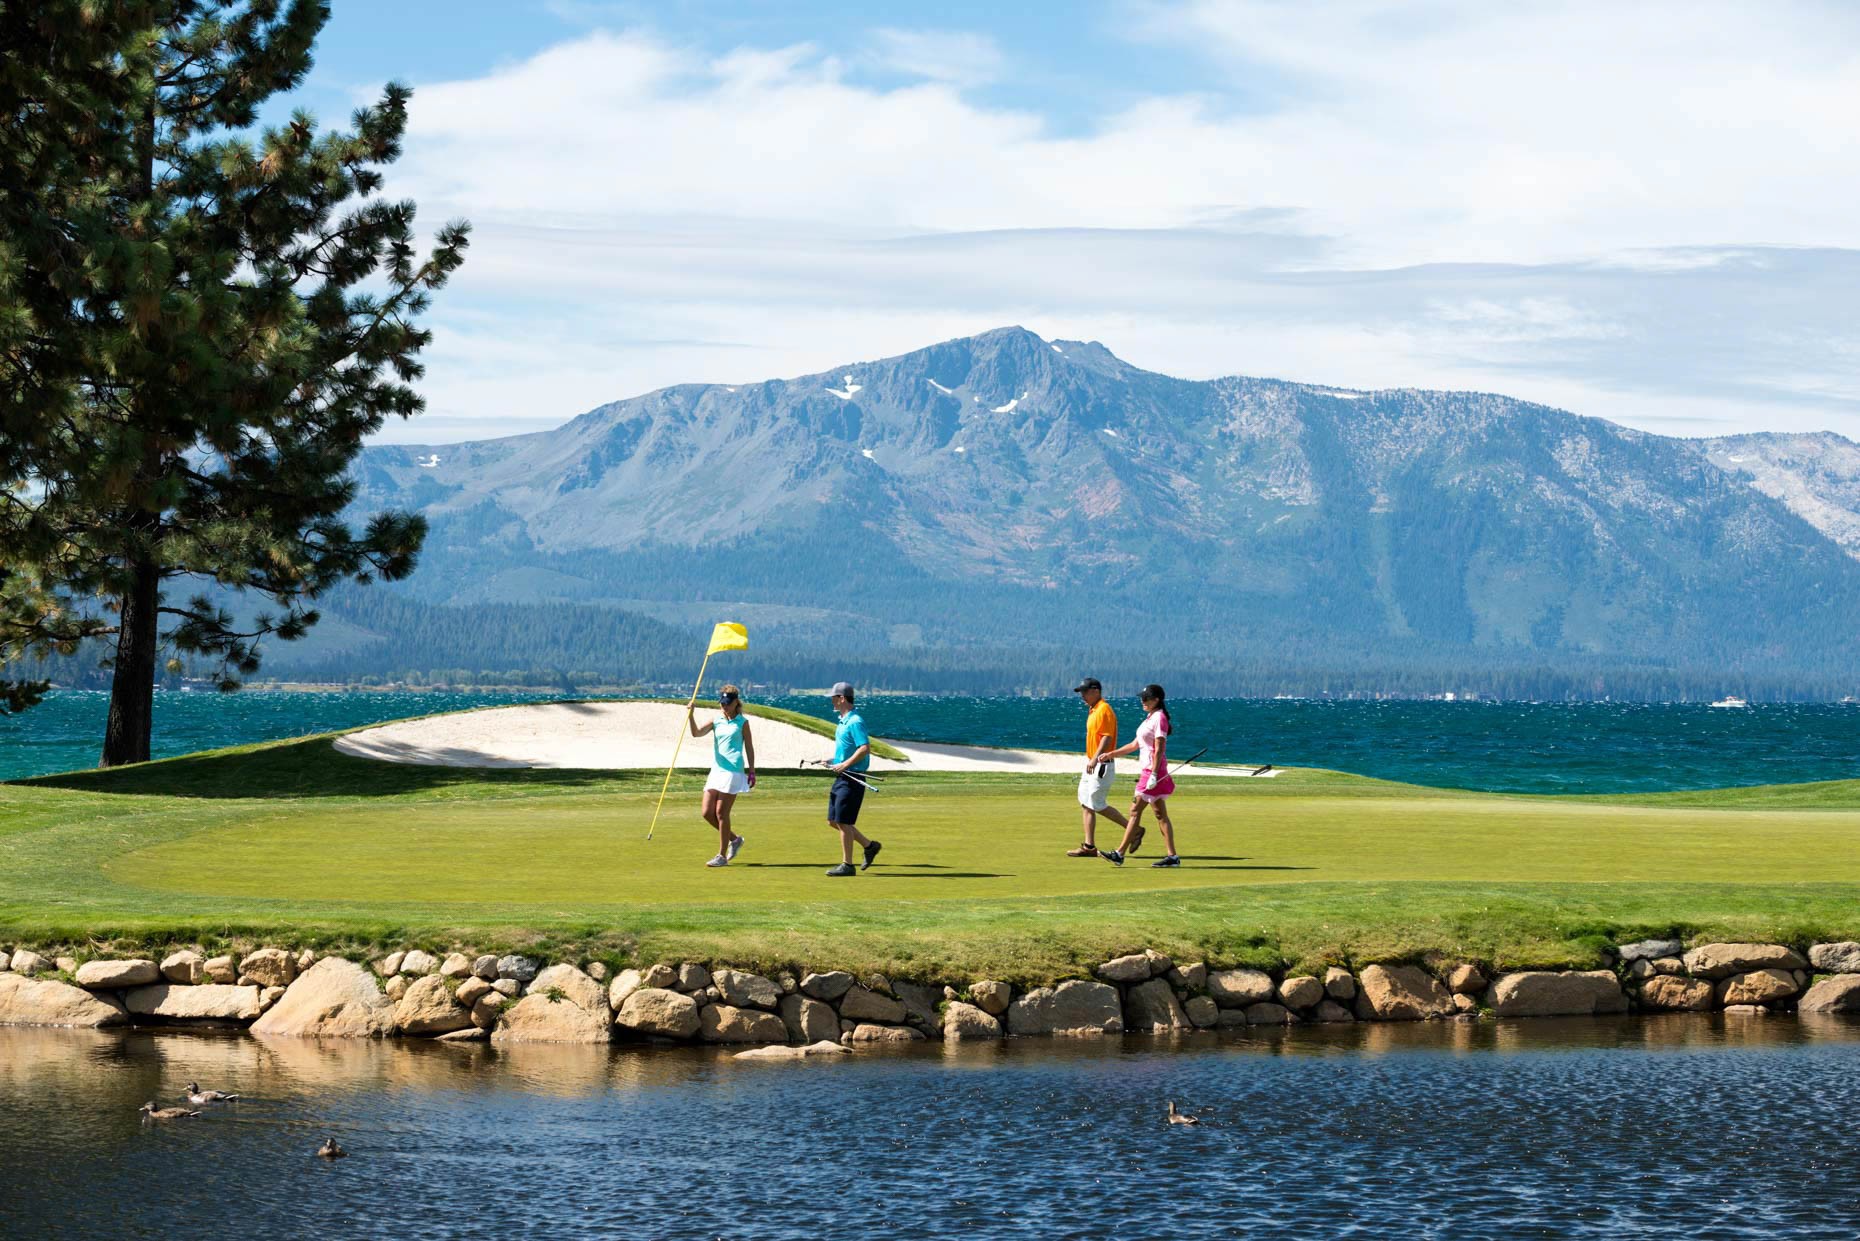 Lifestyle - Golfing At Edgewood - Lake Tahoe, Nevada